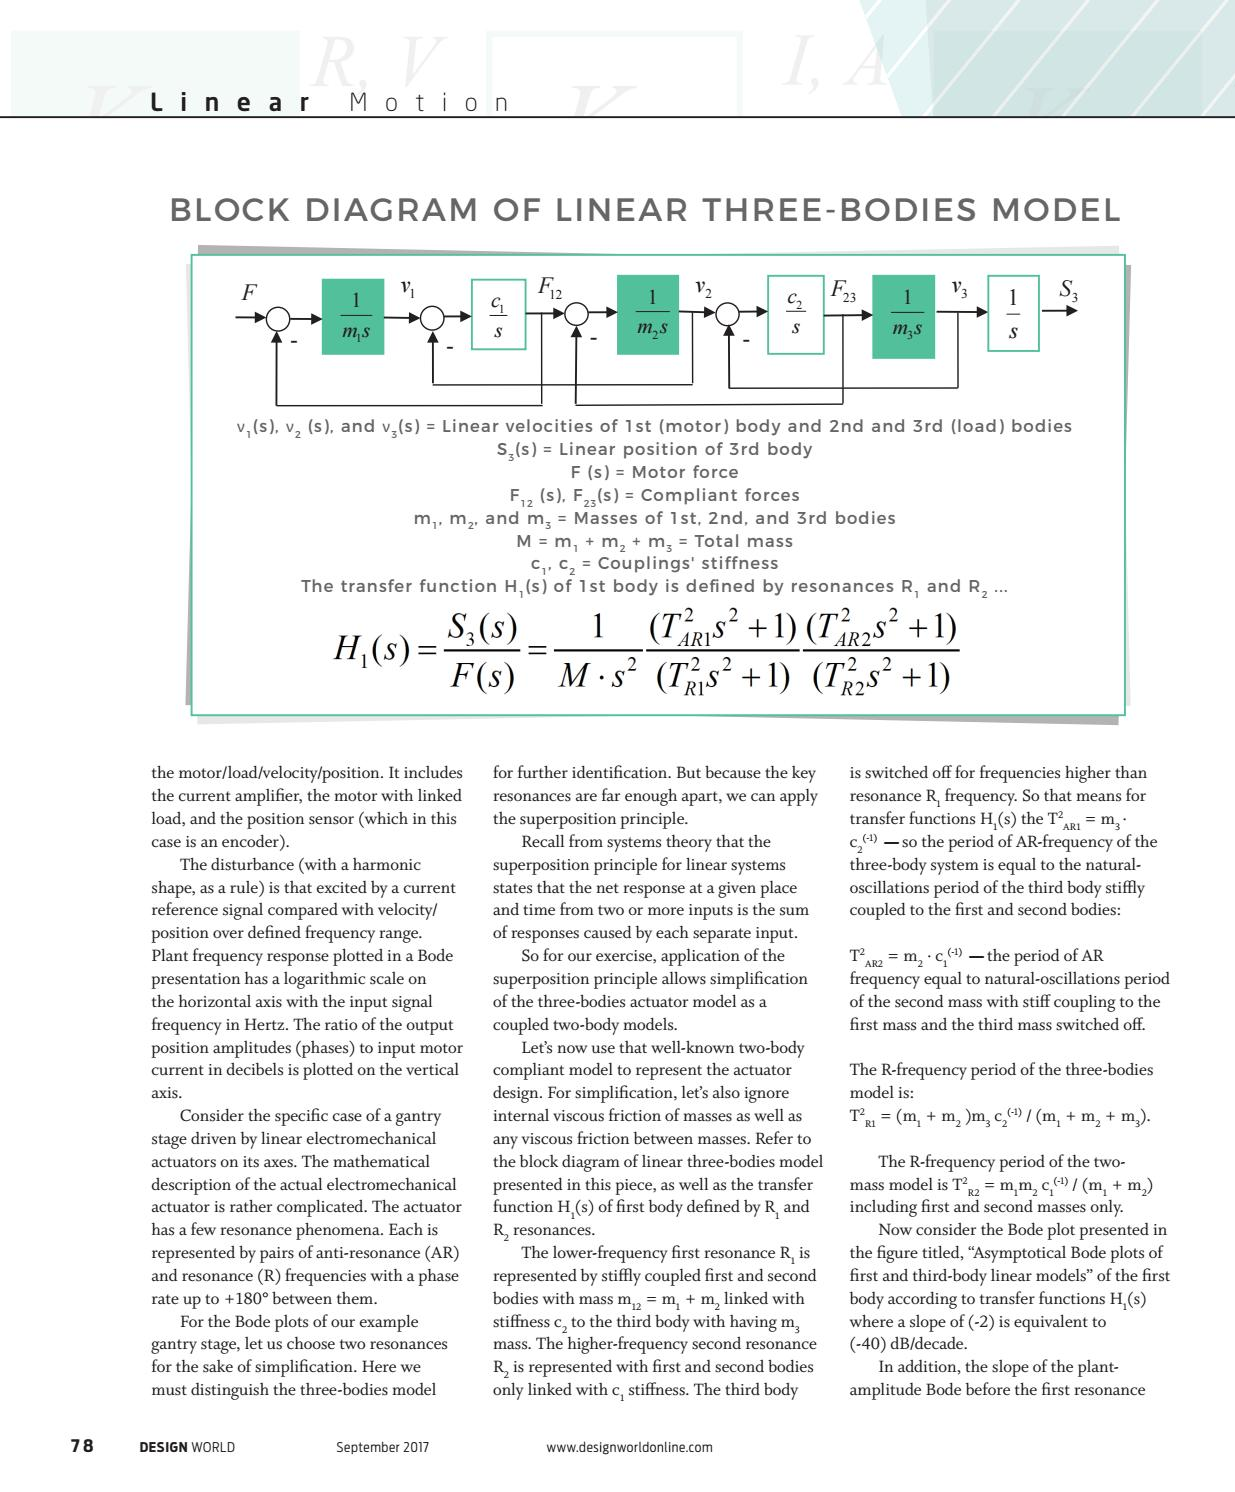 Design World September 2017 By Wtwh Media Llc Issuu Block Diagram From Transfer Function